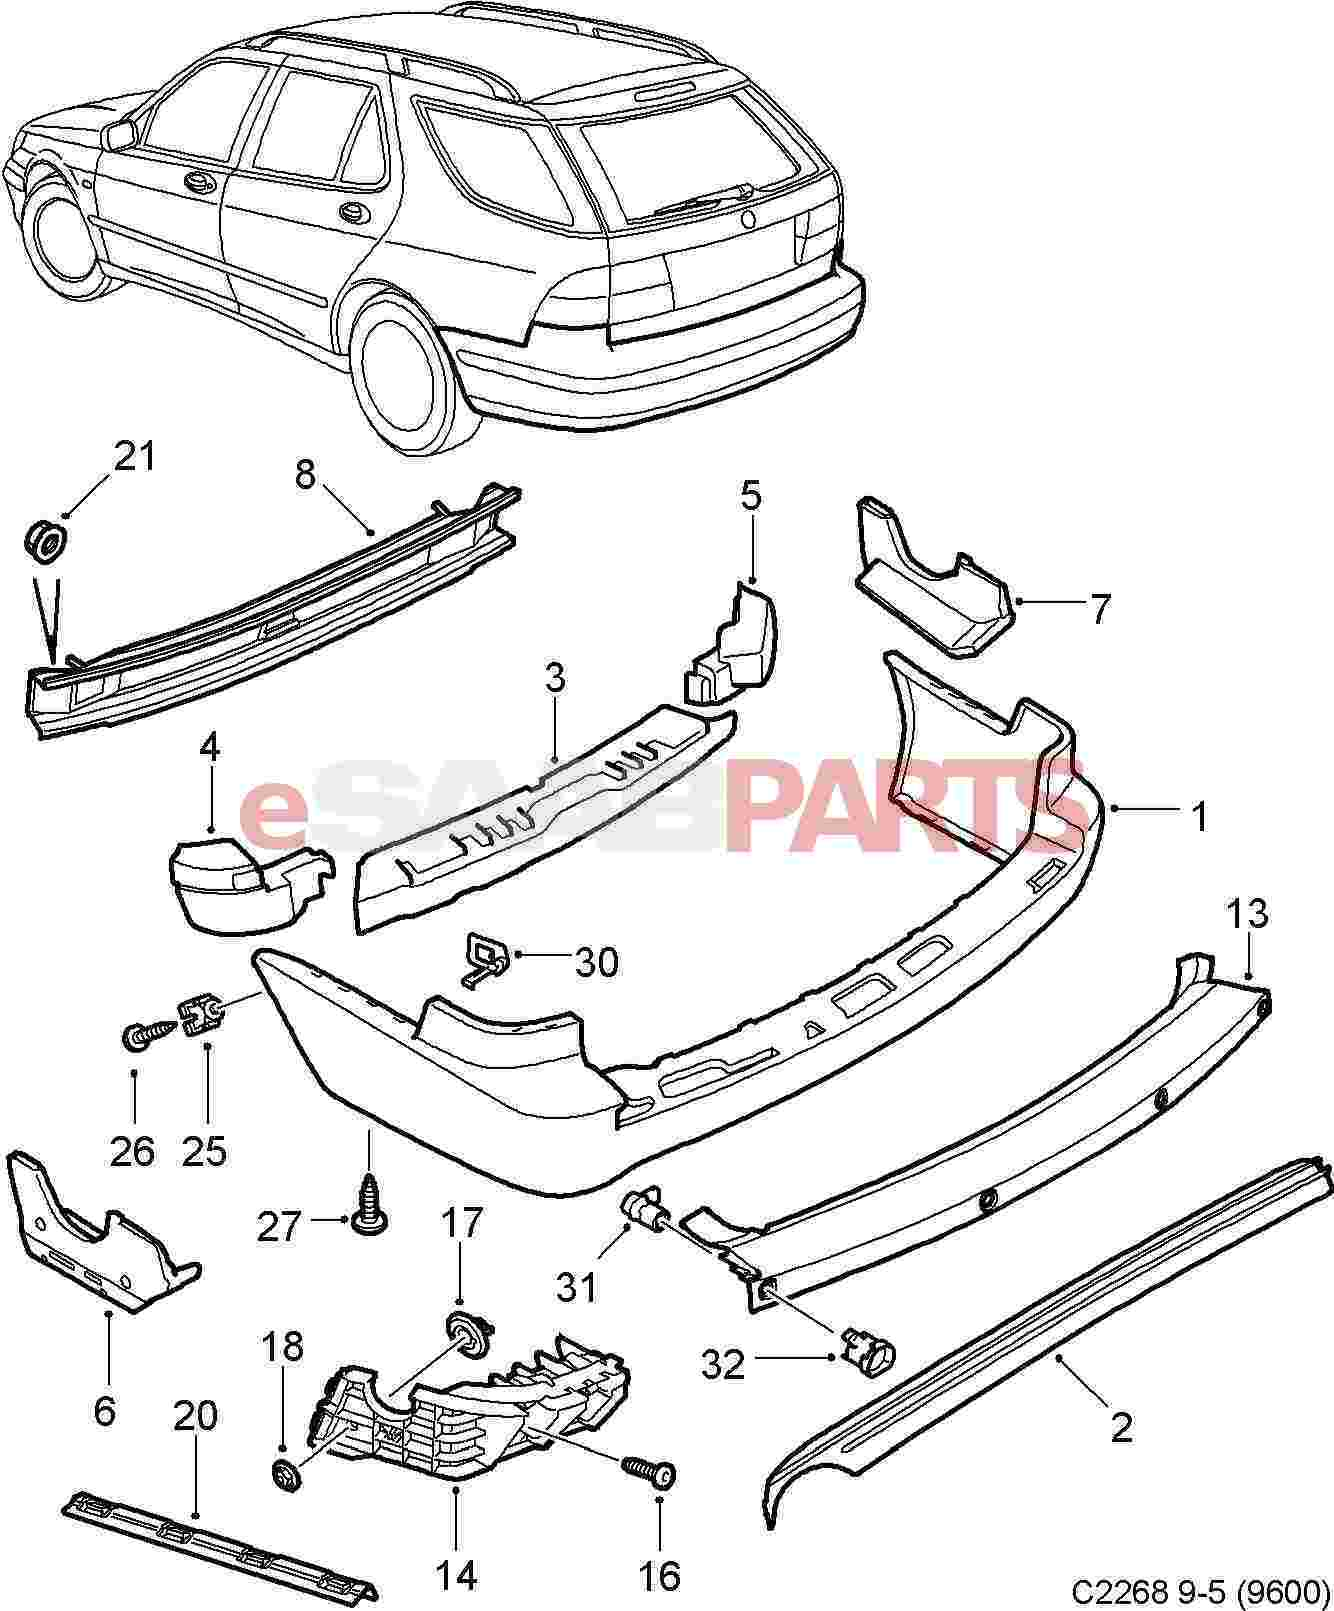 Diagram Of Spoiler further Mini Cooper Sensors moreover Tesla Front Bumper Parts Diagram also Search also 404720. on 2003 saab 9 3 rear bumper